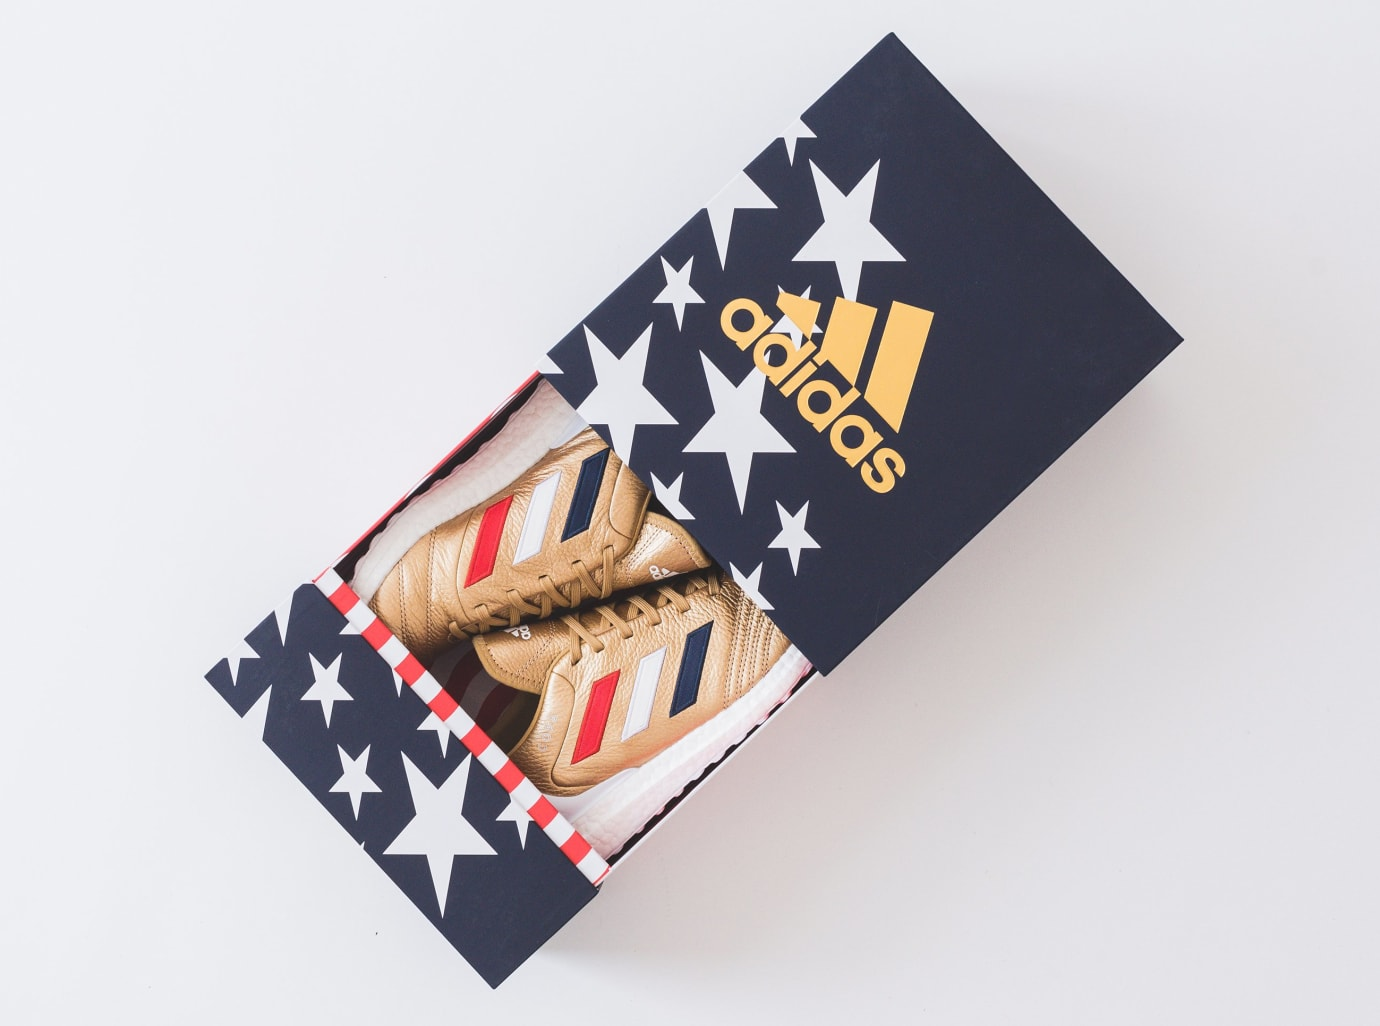 Kith x Adidas Soccer Copa Mundial 18 Ultra Boost (Packaging)